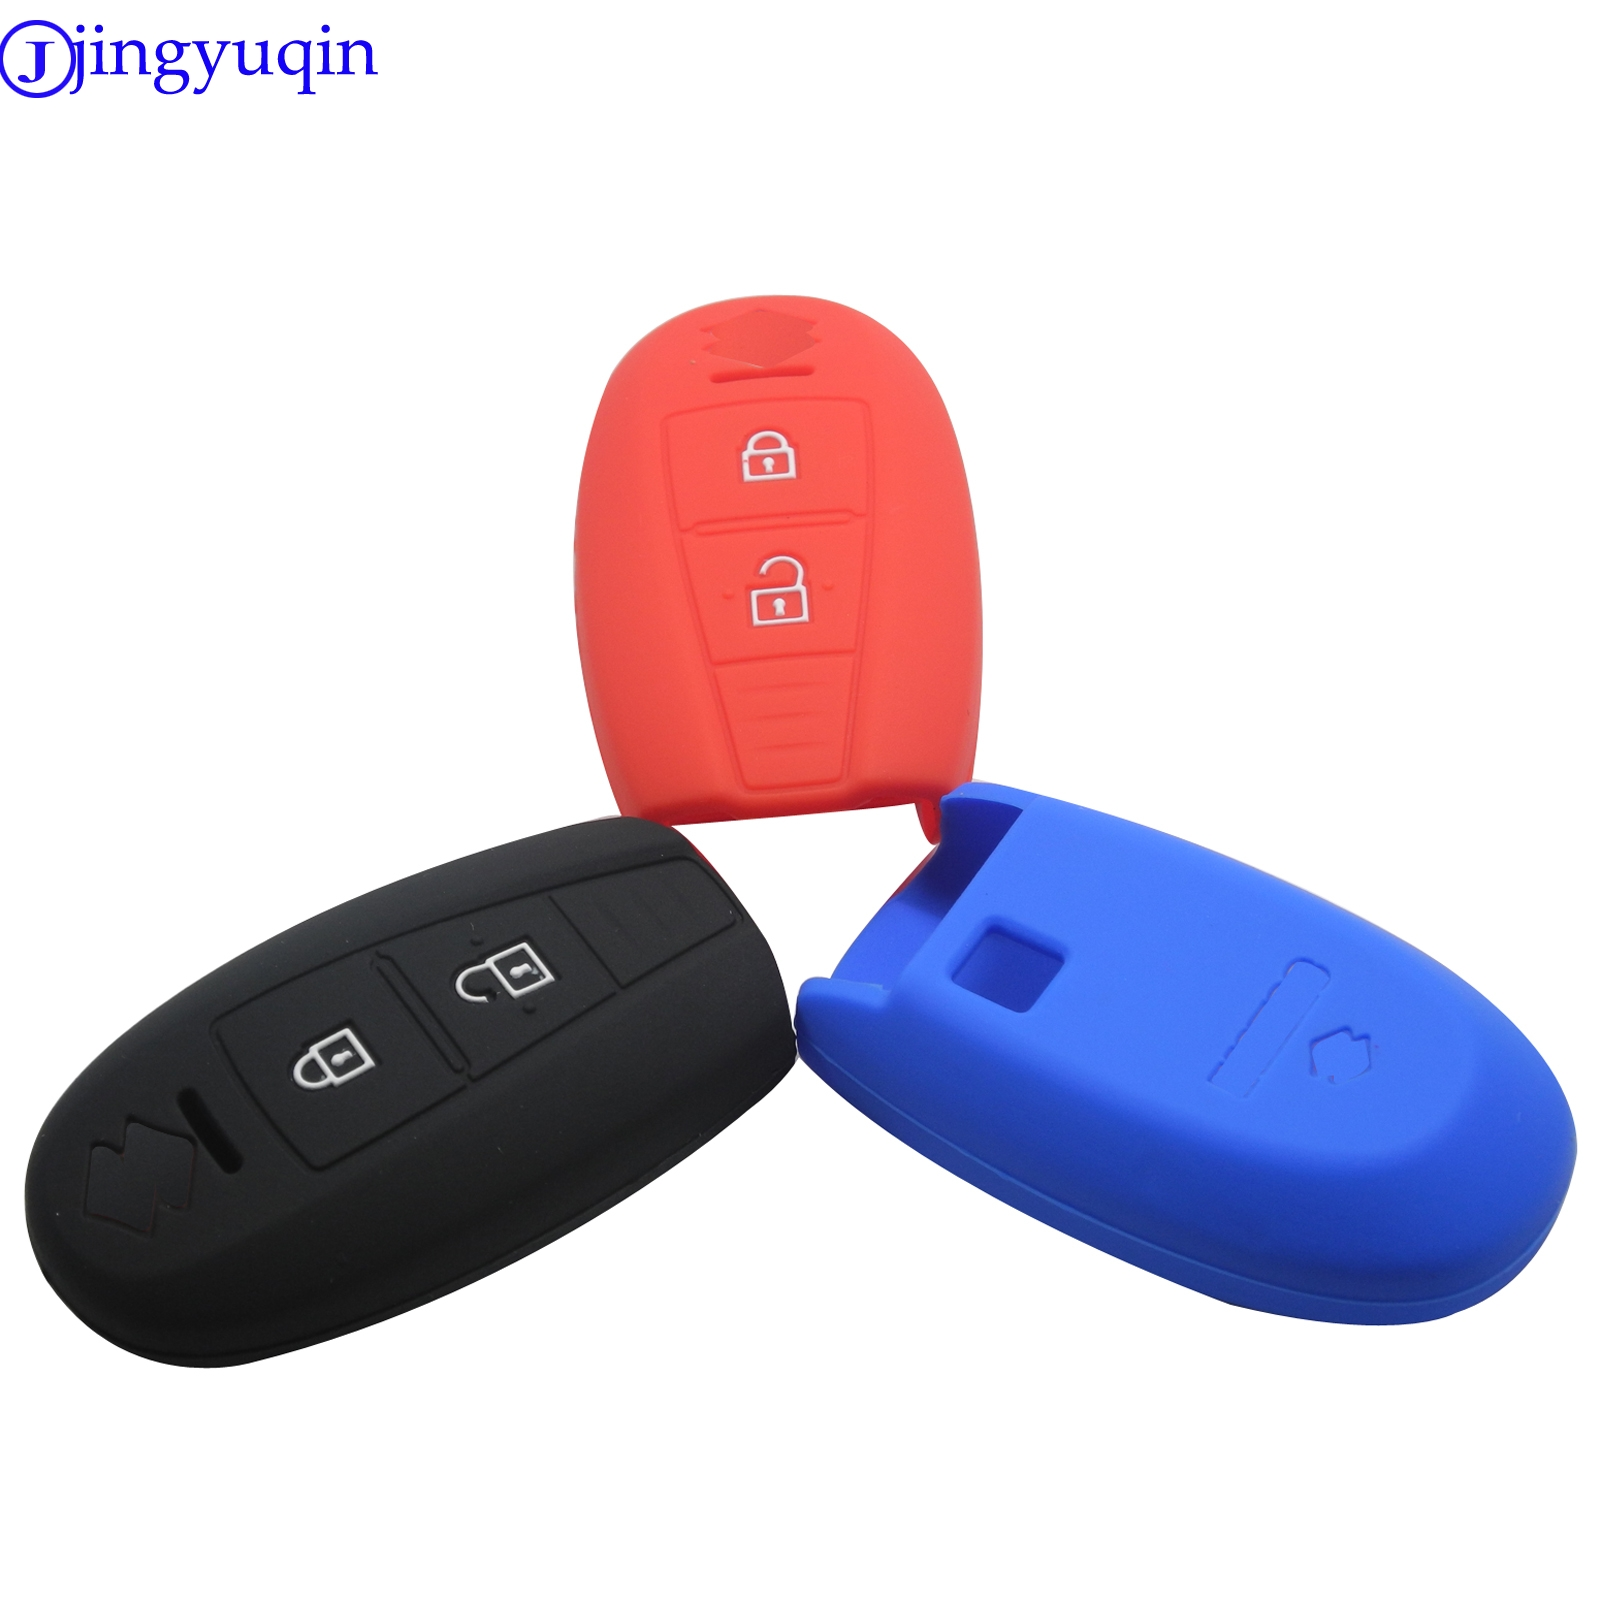 jingyuqin New <font><b>Remote</b></font> Car <font><b>Key</b></font> Fob Silicone Case Cover Protector For <font><b>SUZUKI</b></font> Swift Sport SX4 SCORSS 2 Button Car Accessories image